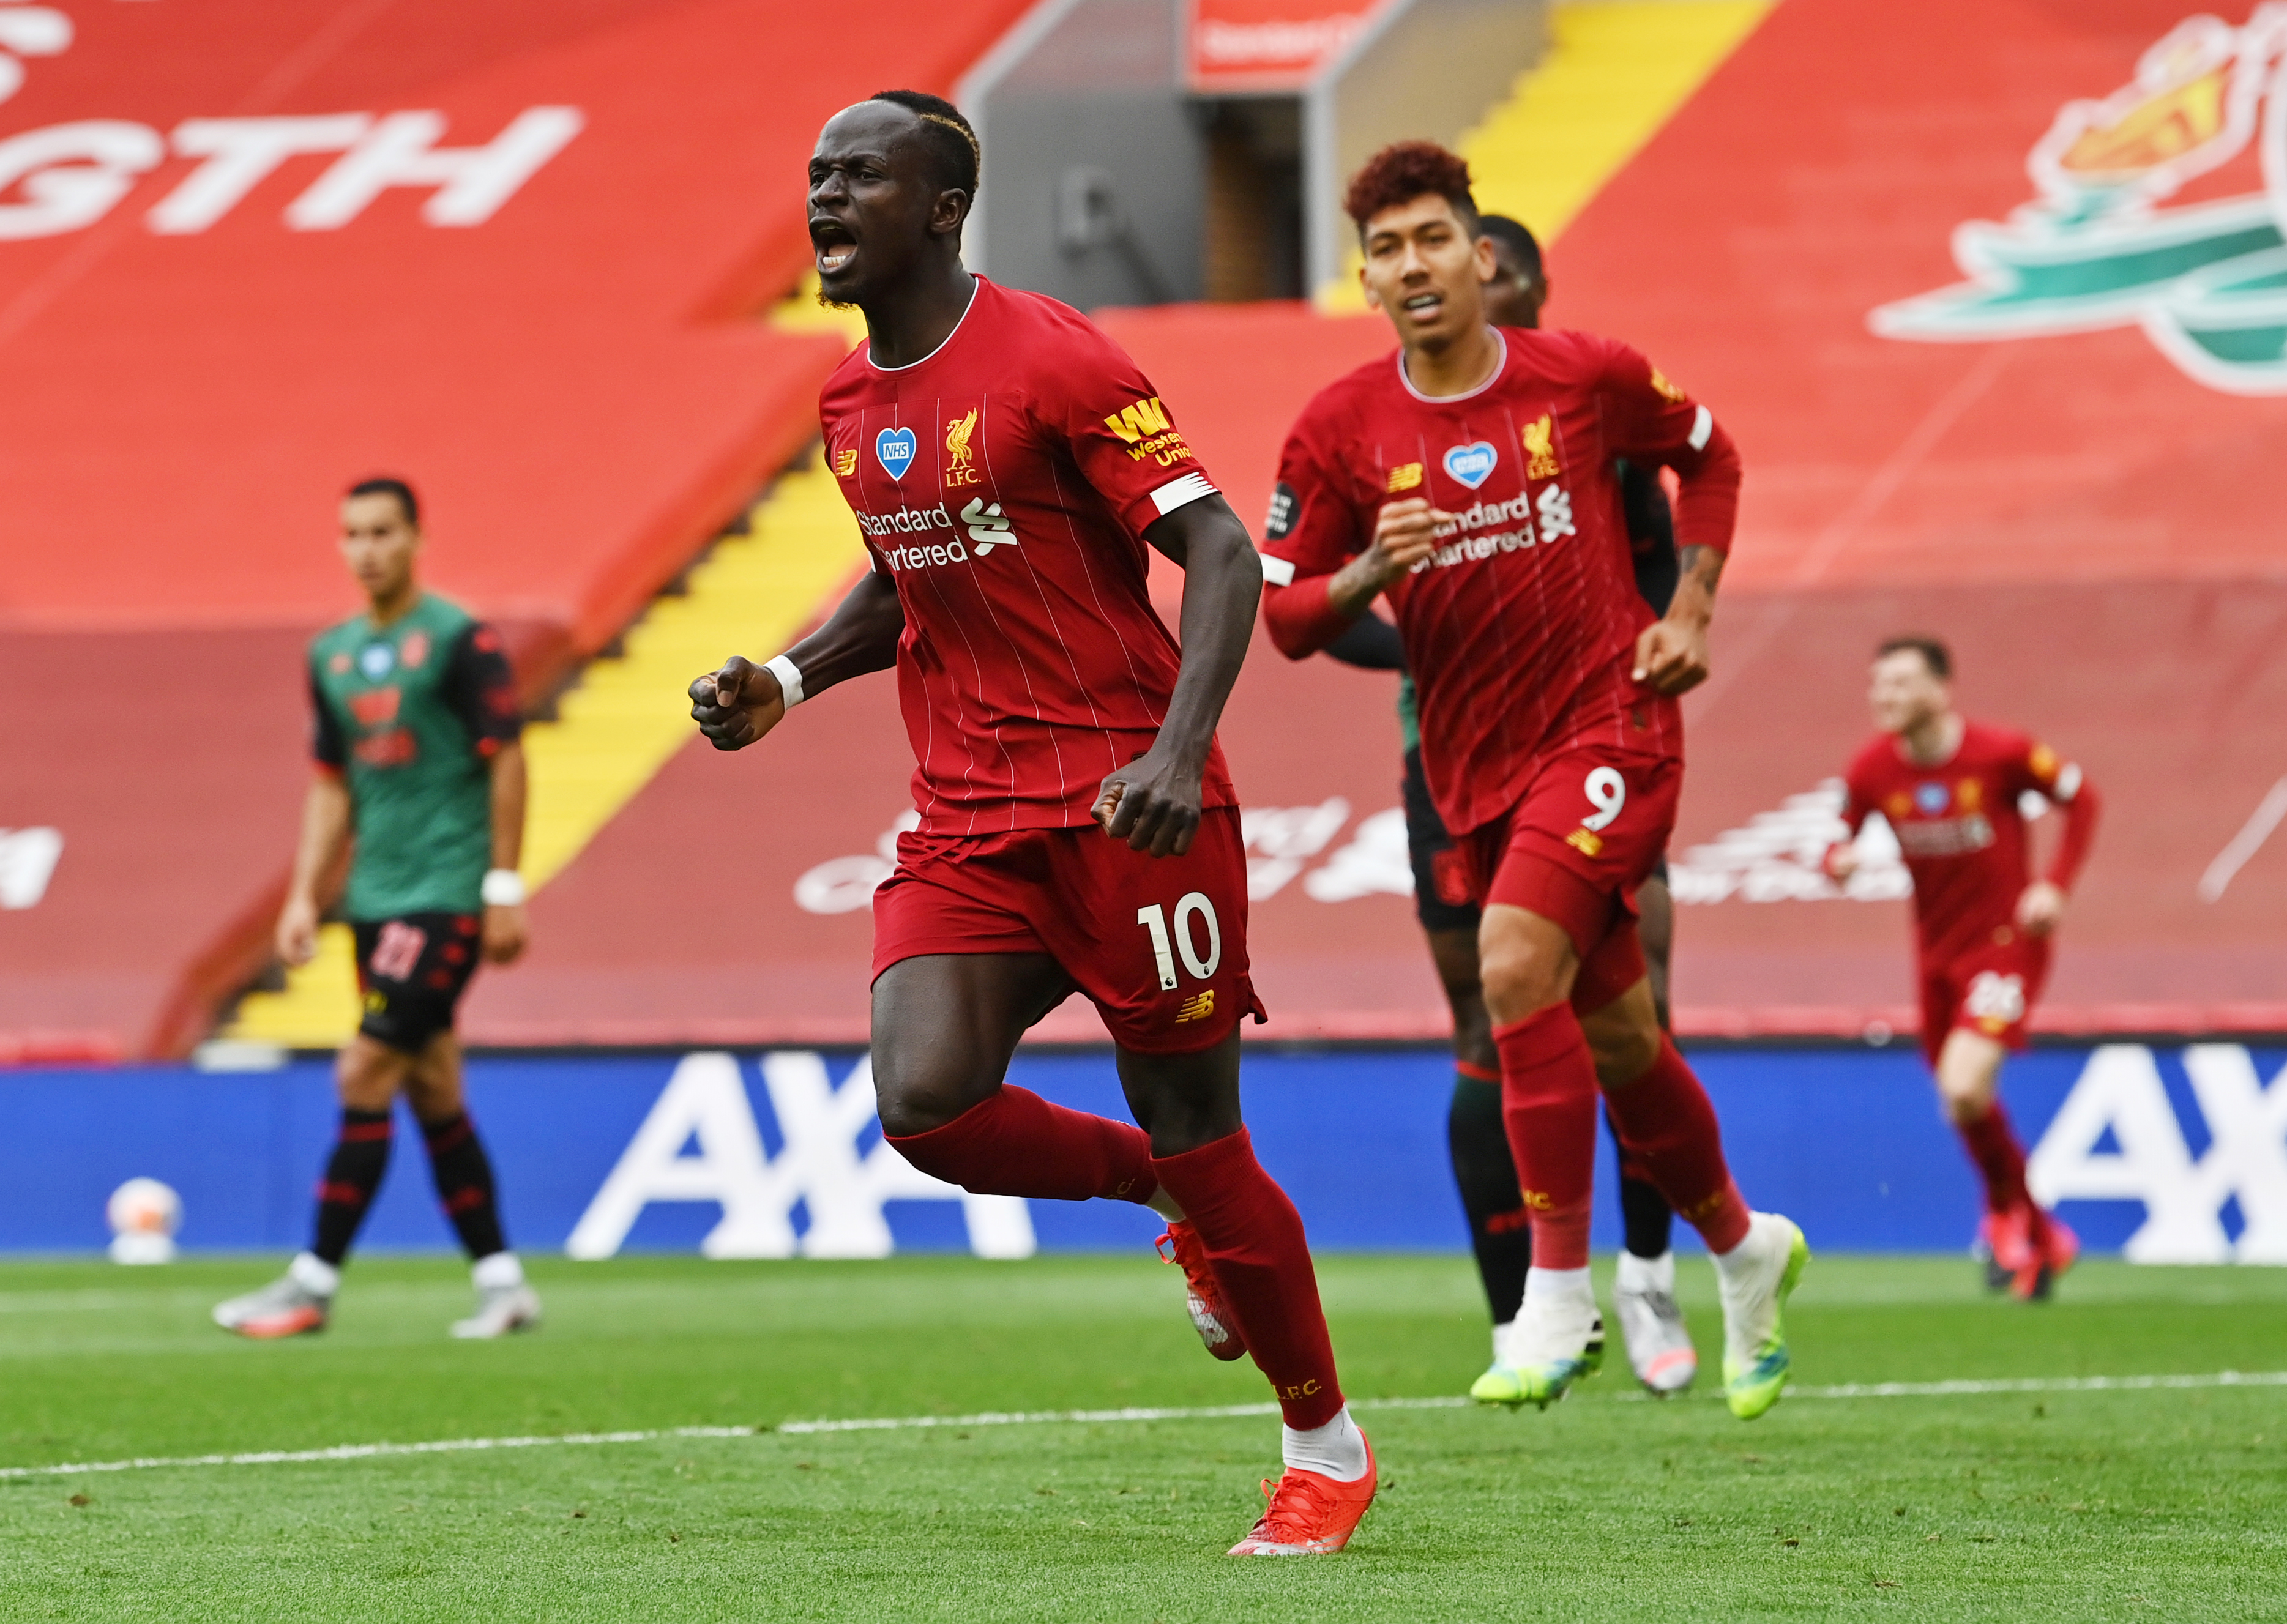 Liverpool's Sadio Mane celebrates scoring their first goal, as play resumes behind closed doors following the outbreak of the coronavirus disease (COVID-19). Photo: Reuters